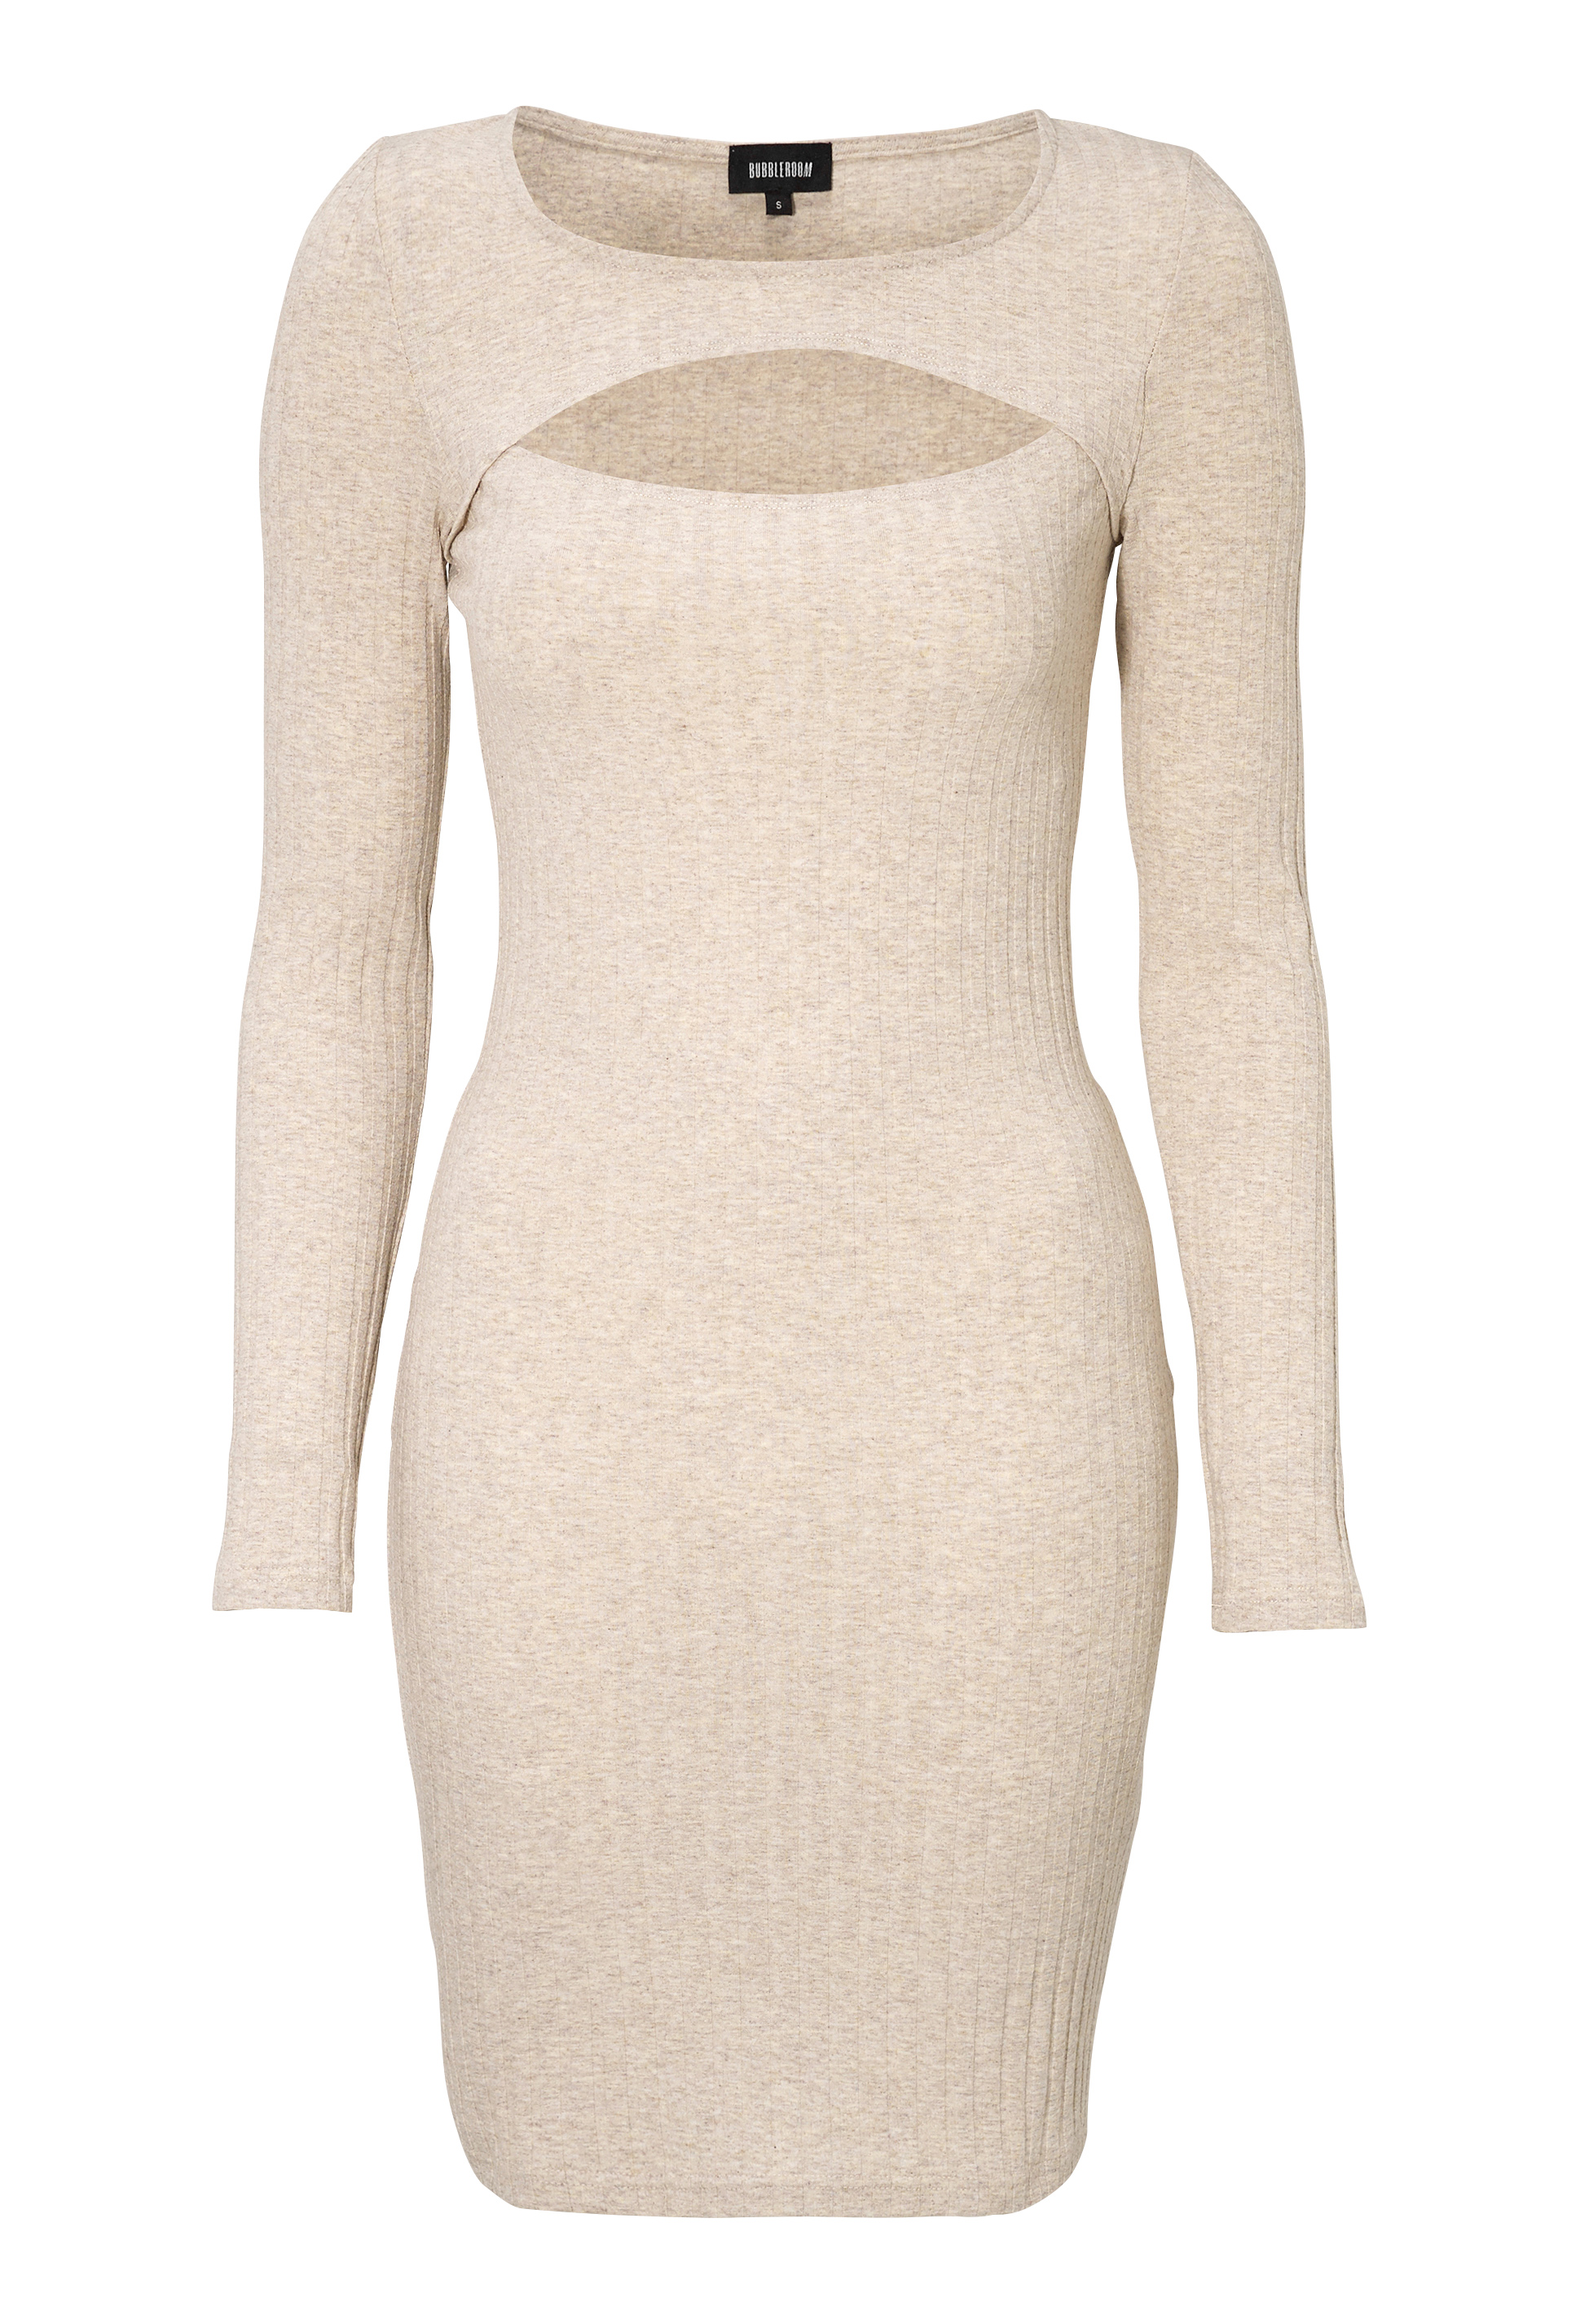 BUBBLEROOM Kampala rib dress Beige melange - Bubbleroom ba8069f514189